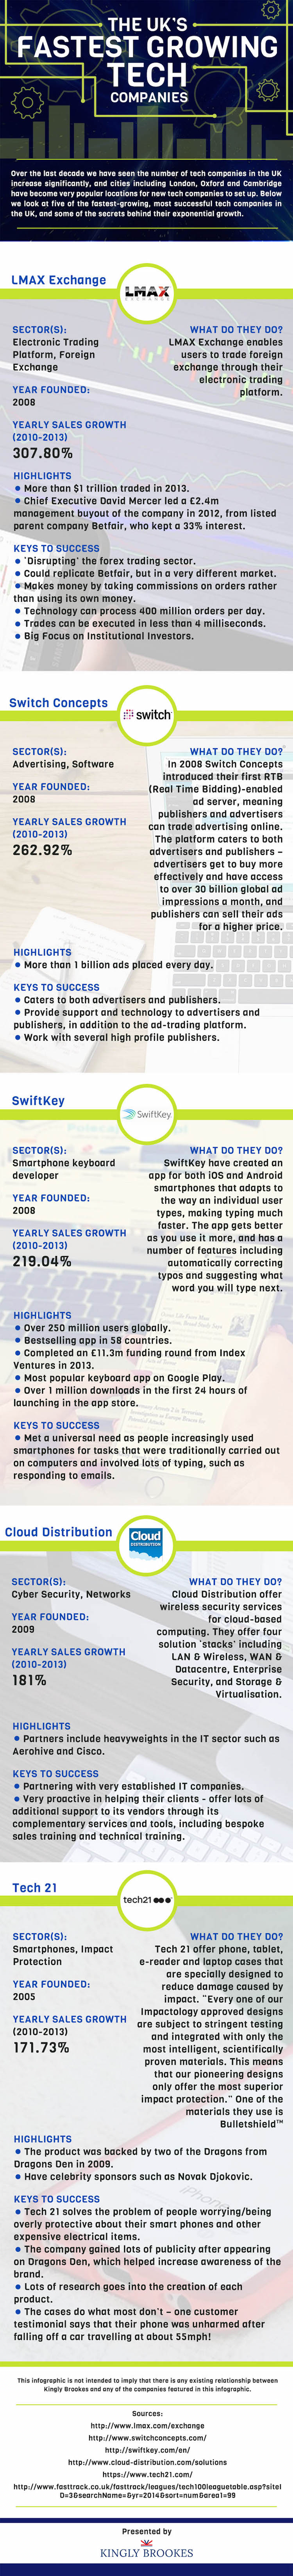 Fastest Growing Tech Companies Infographic